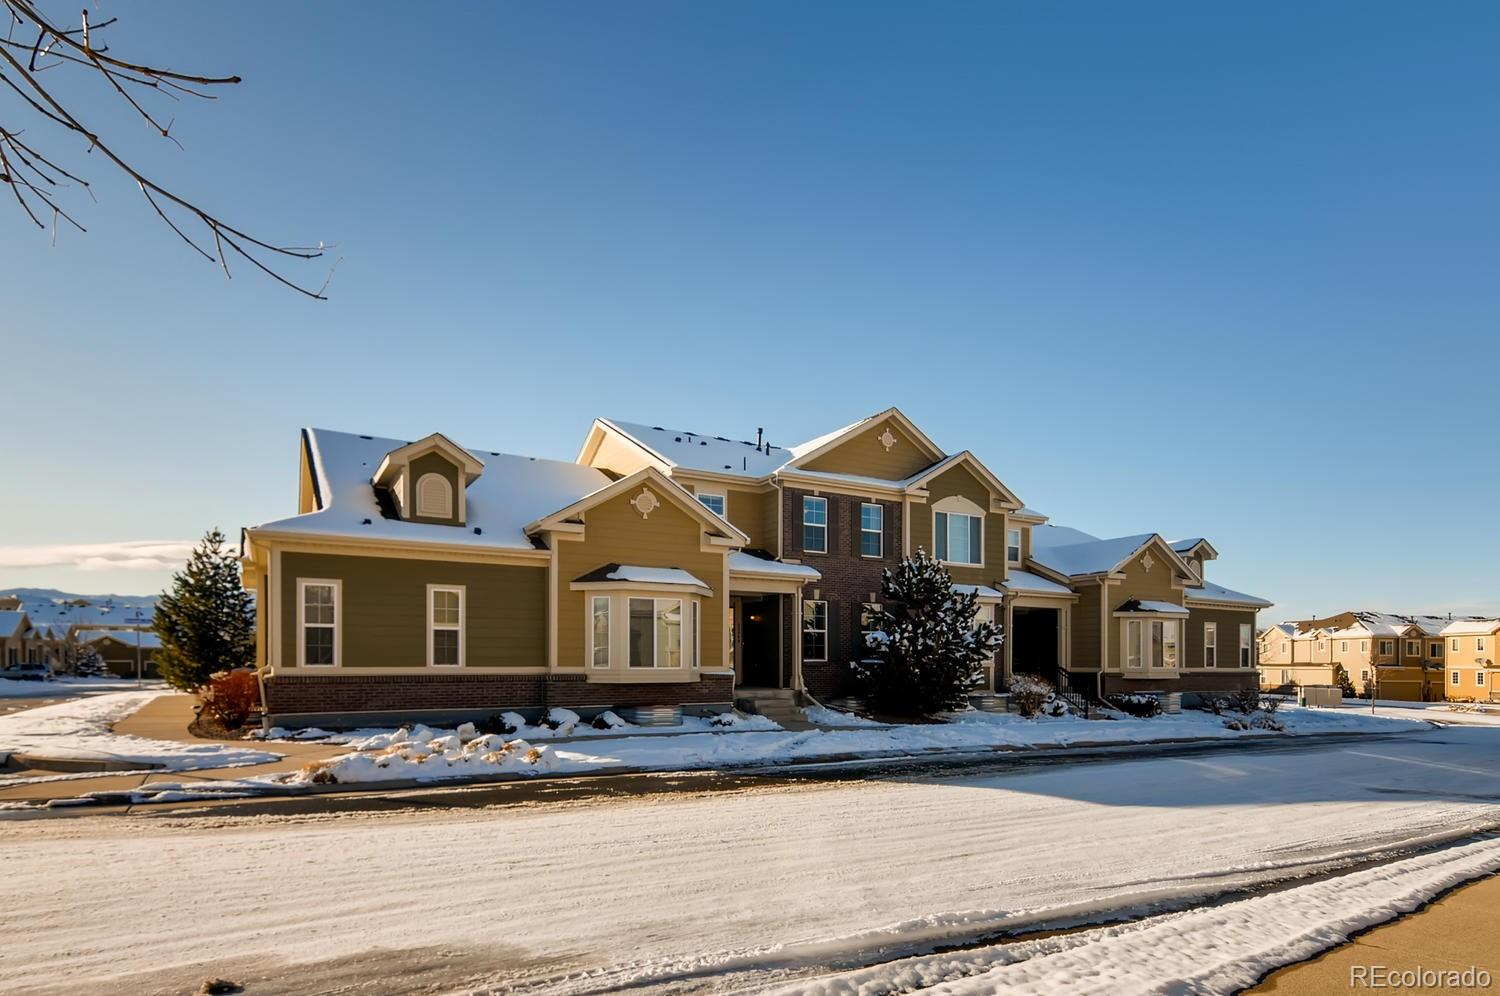 MLS# 7221066 - 35 - 6288 Orchard Court #B, Arvada, CO 80403